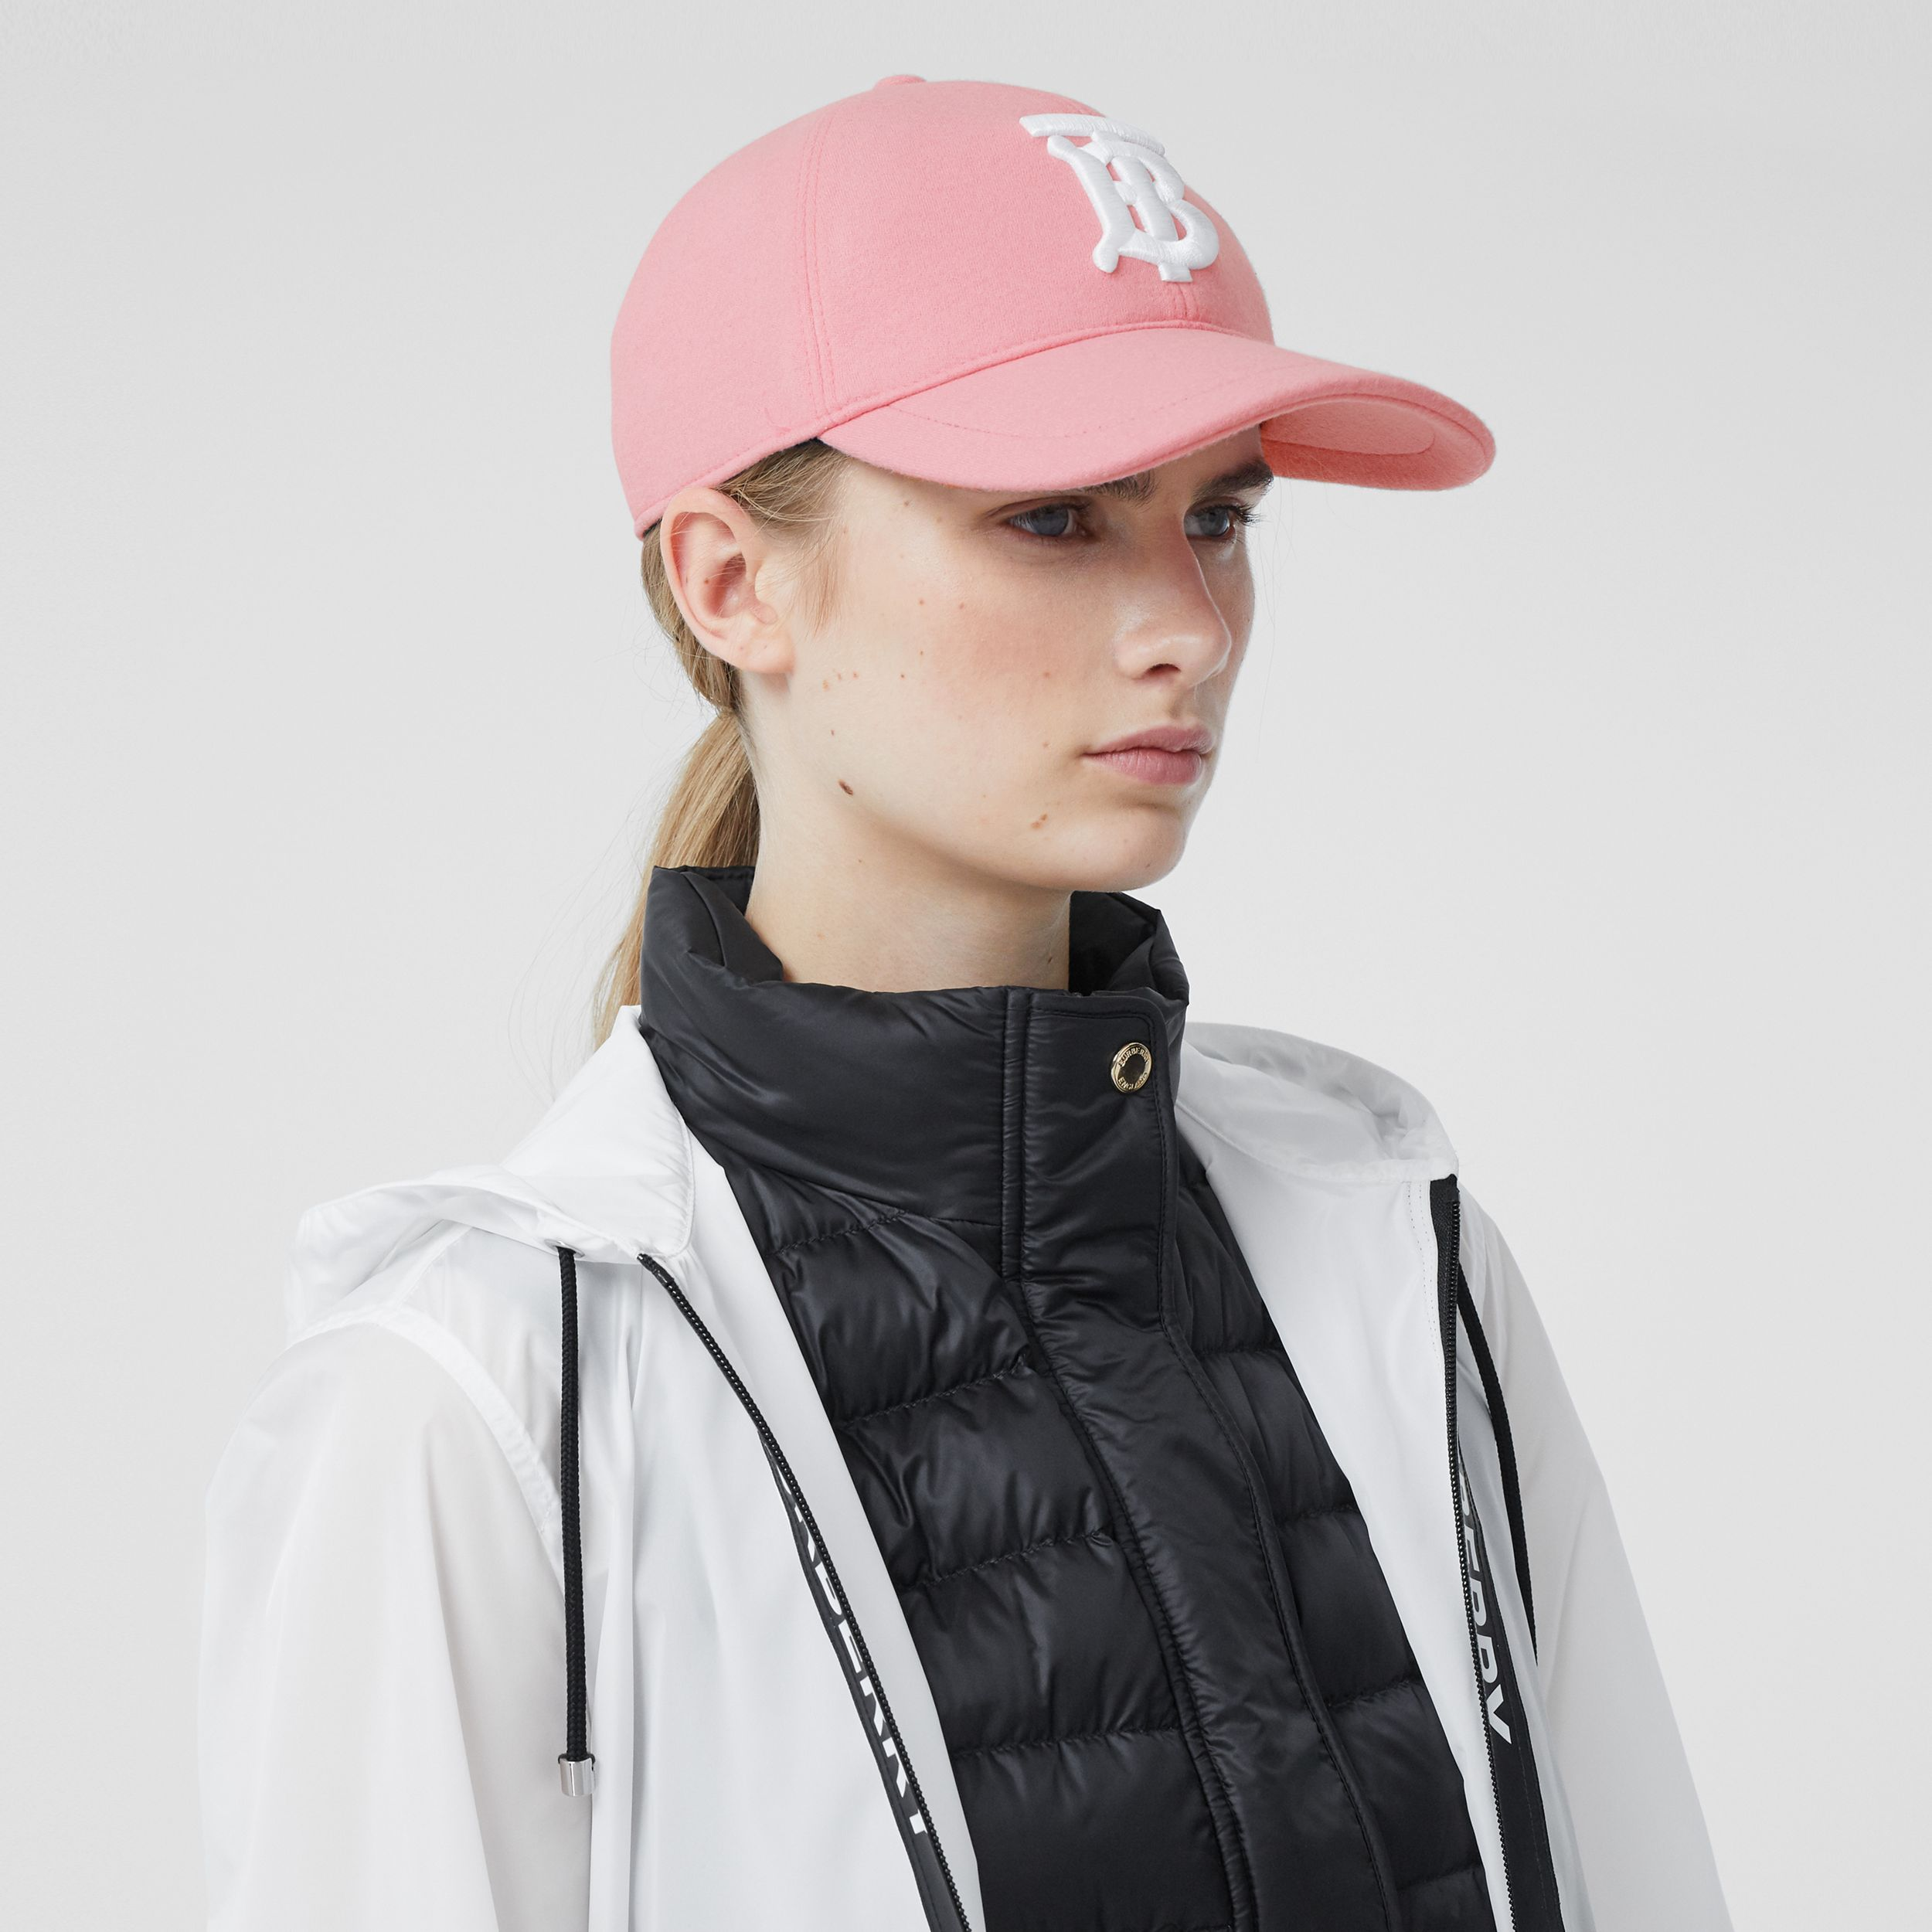 Monogram Motif Jersey Baseball Cap in Pink | Burberry - 3